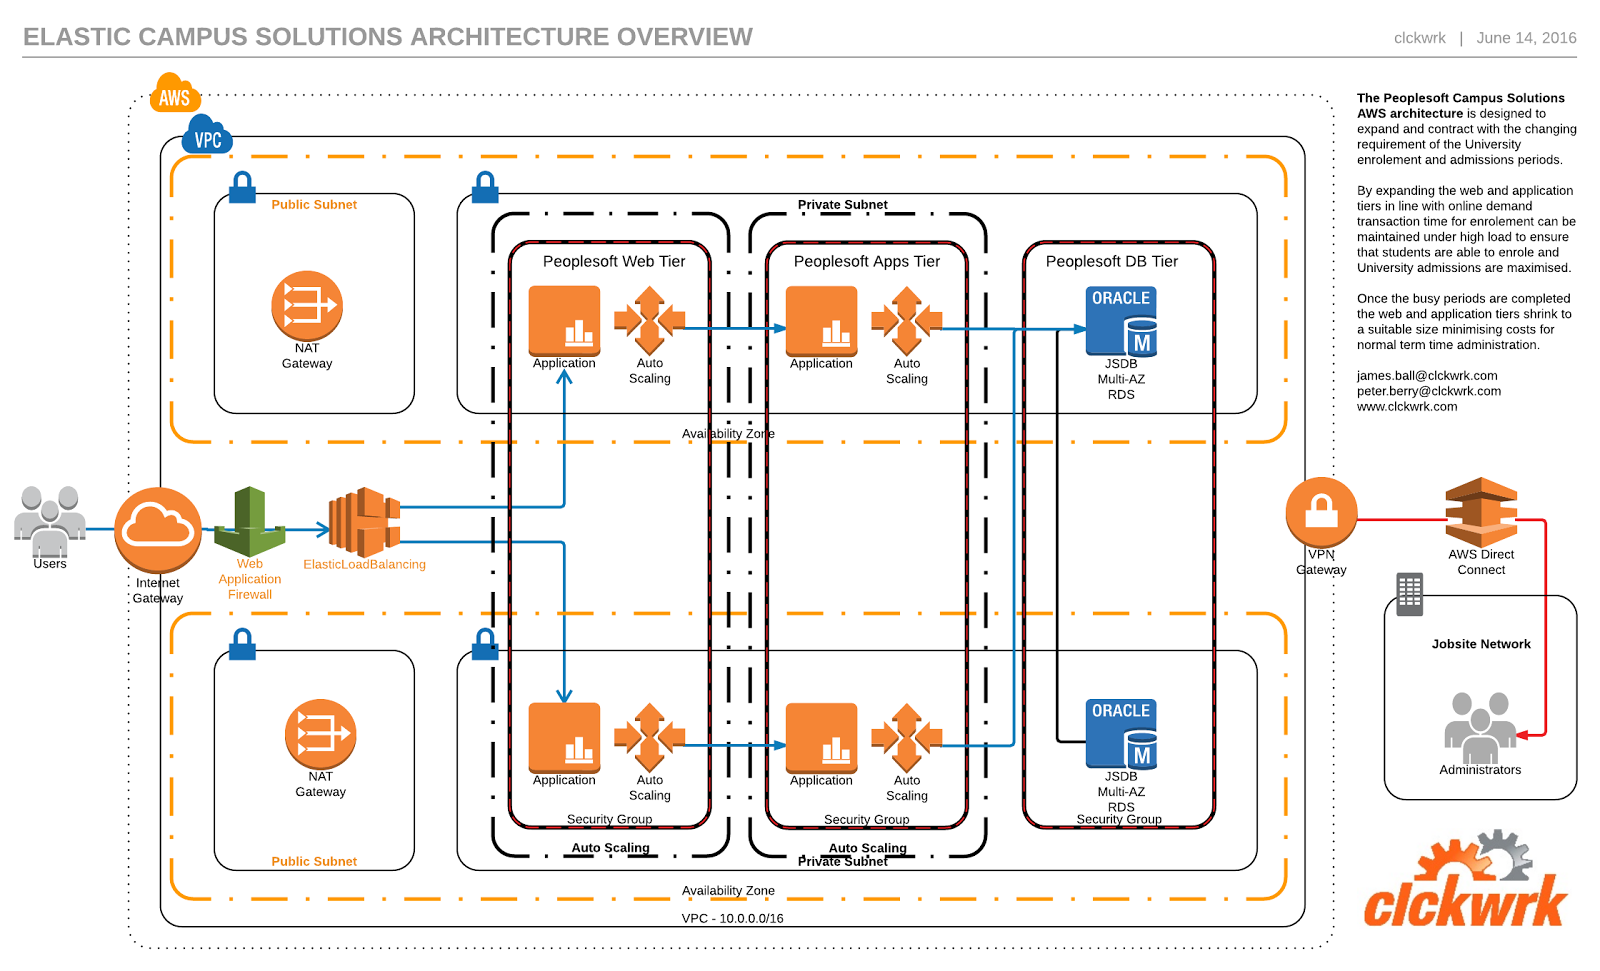 Clckwrk design blueprint peoplesoft campus solutions on aws high availability infrastructure to ensure that both the administrative and student users can access data at all times this solution uses multiple web malvernweather Image collections